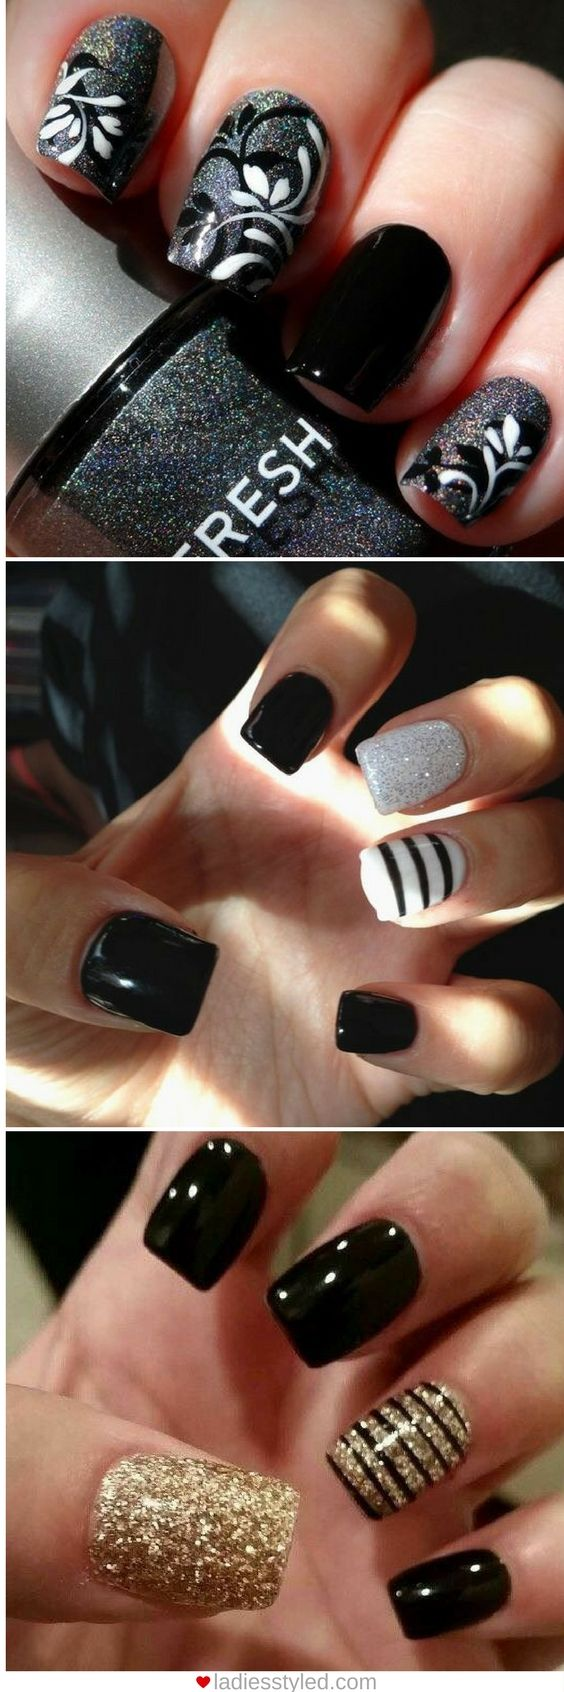 best 25+ dark nails ideas on pinterest | dark nail designs, winter